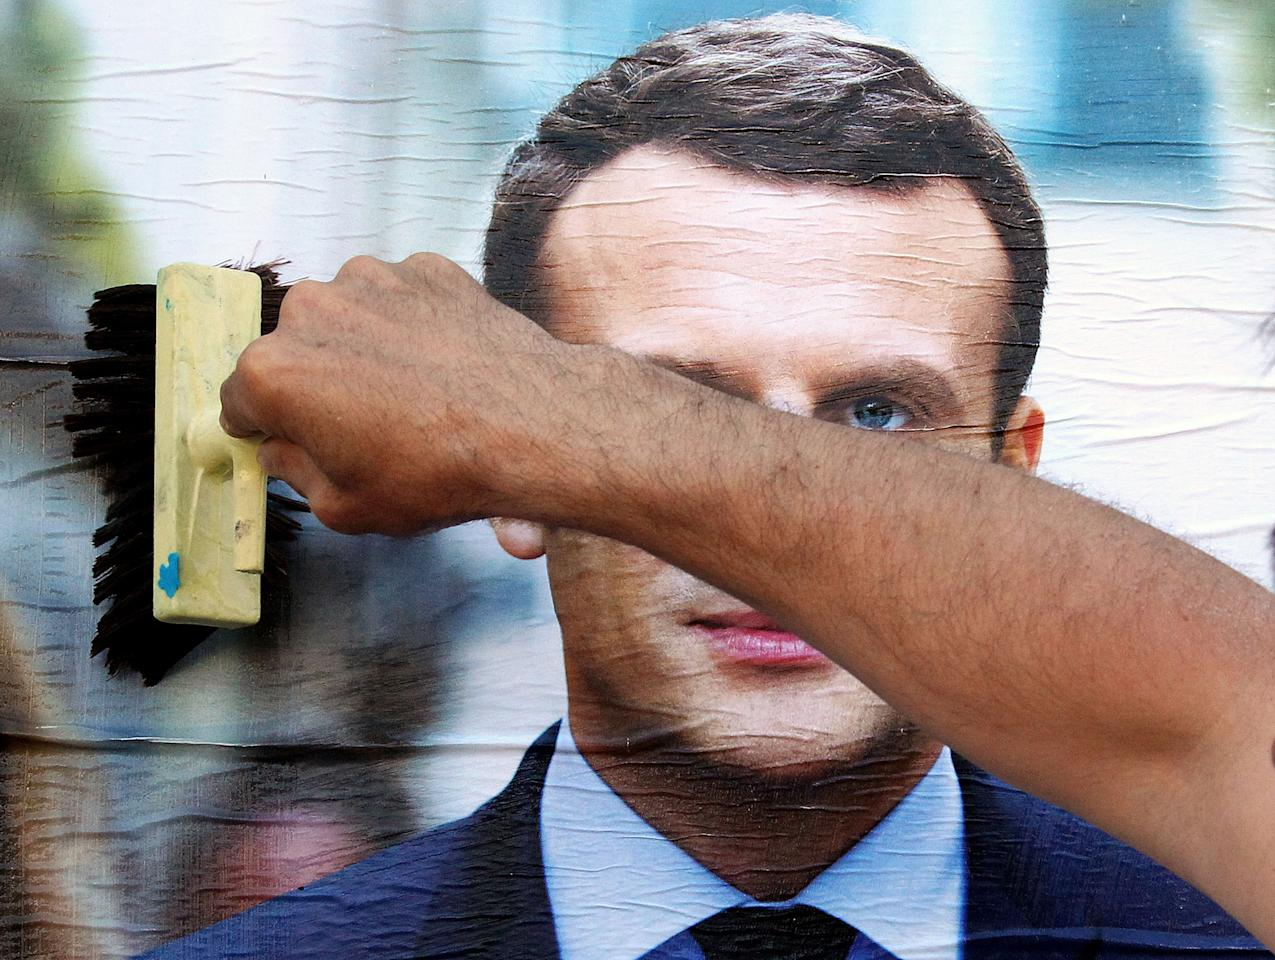 <p>A supporter of French centrist presidential candidate Emmanuel Macron glues a campaign poster to the wall in Bayonne, southwestern France, Wednesday, April 19, 2017. The two-round presidential election is set for April 23 and May 7. (AP Photo/Bob Edme) </p>